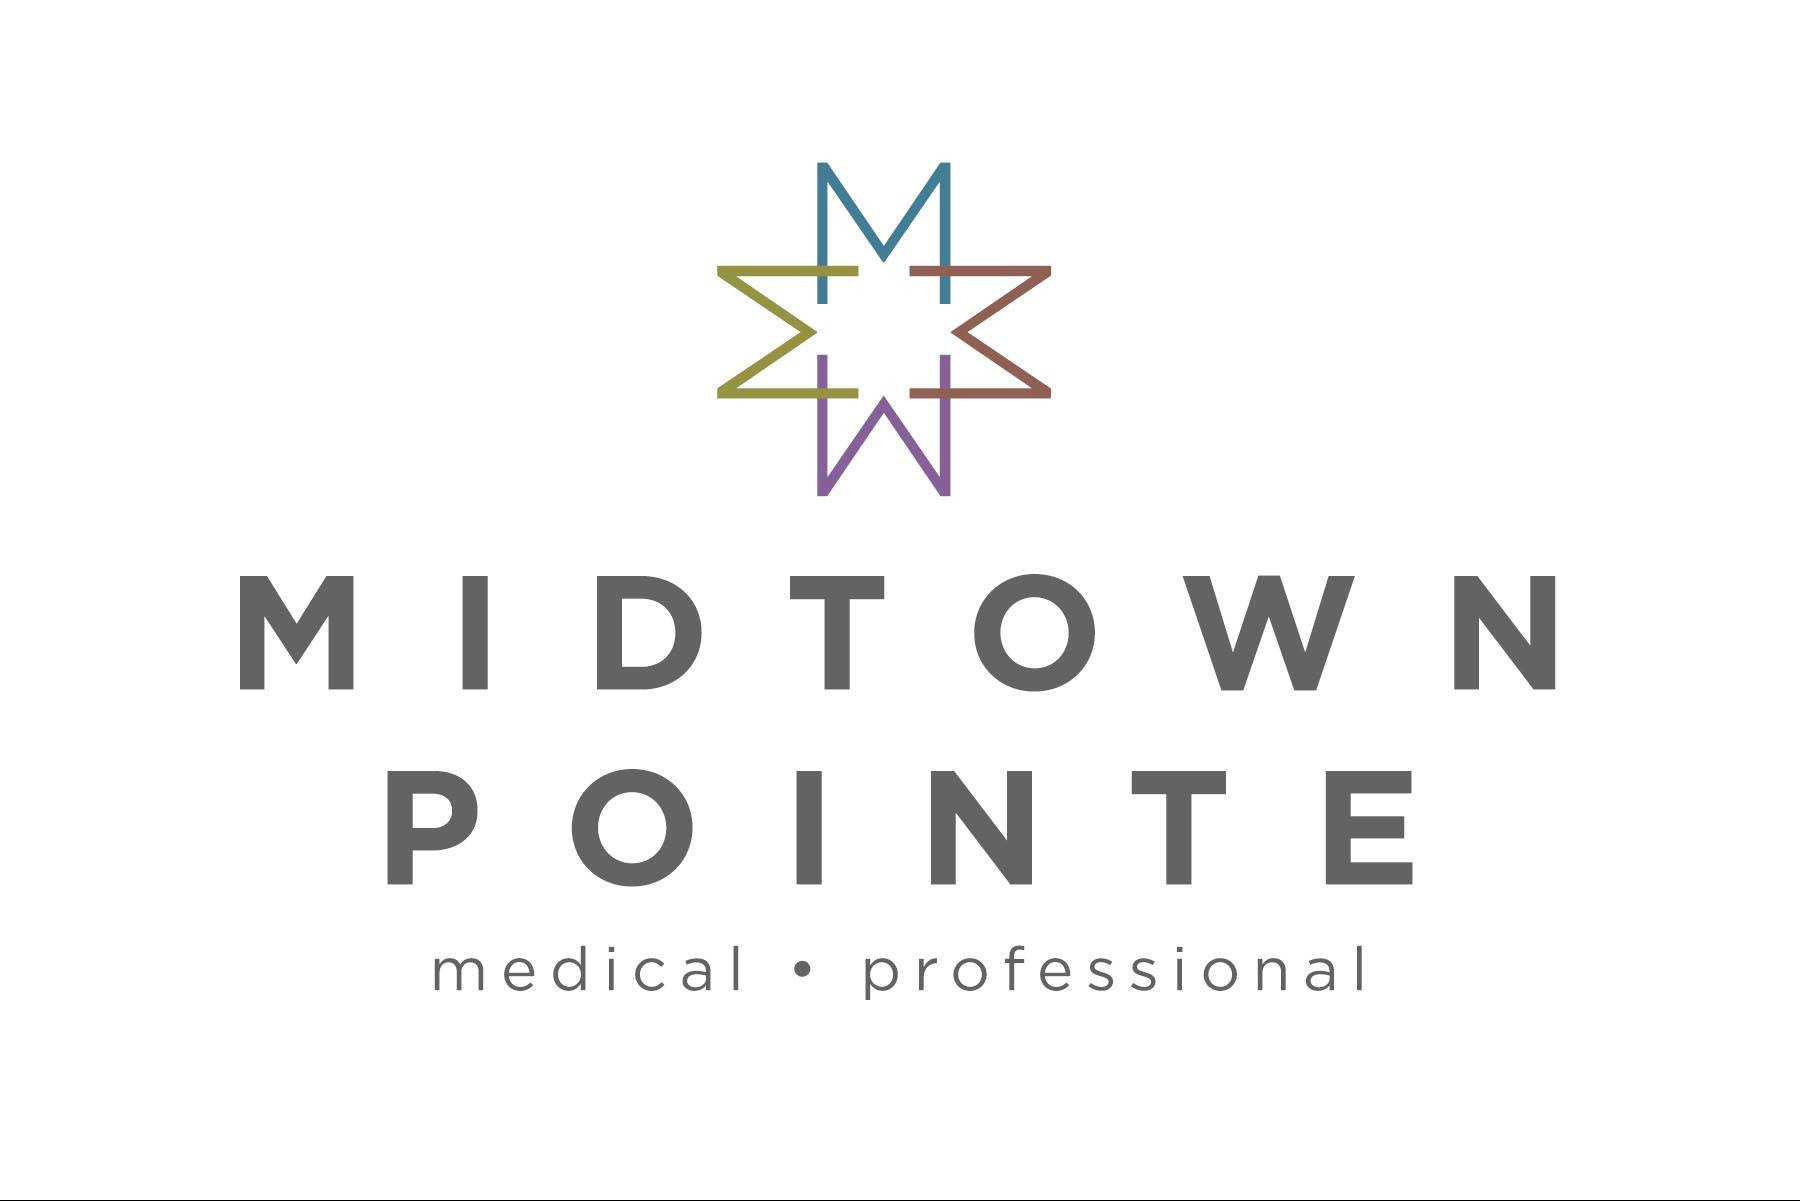 Midtown Pointe